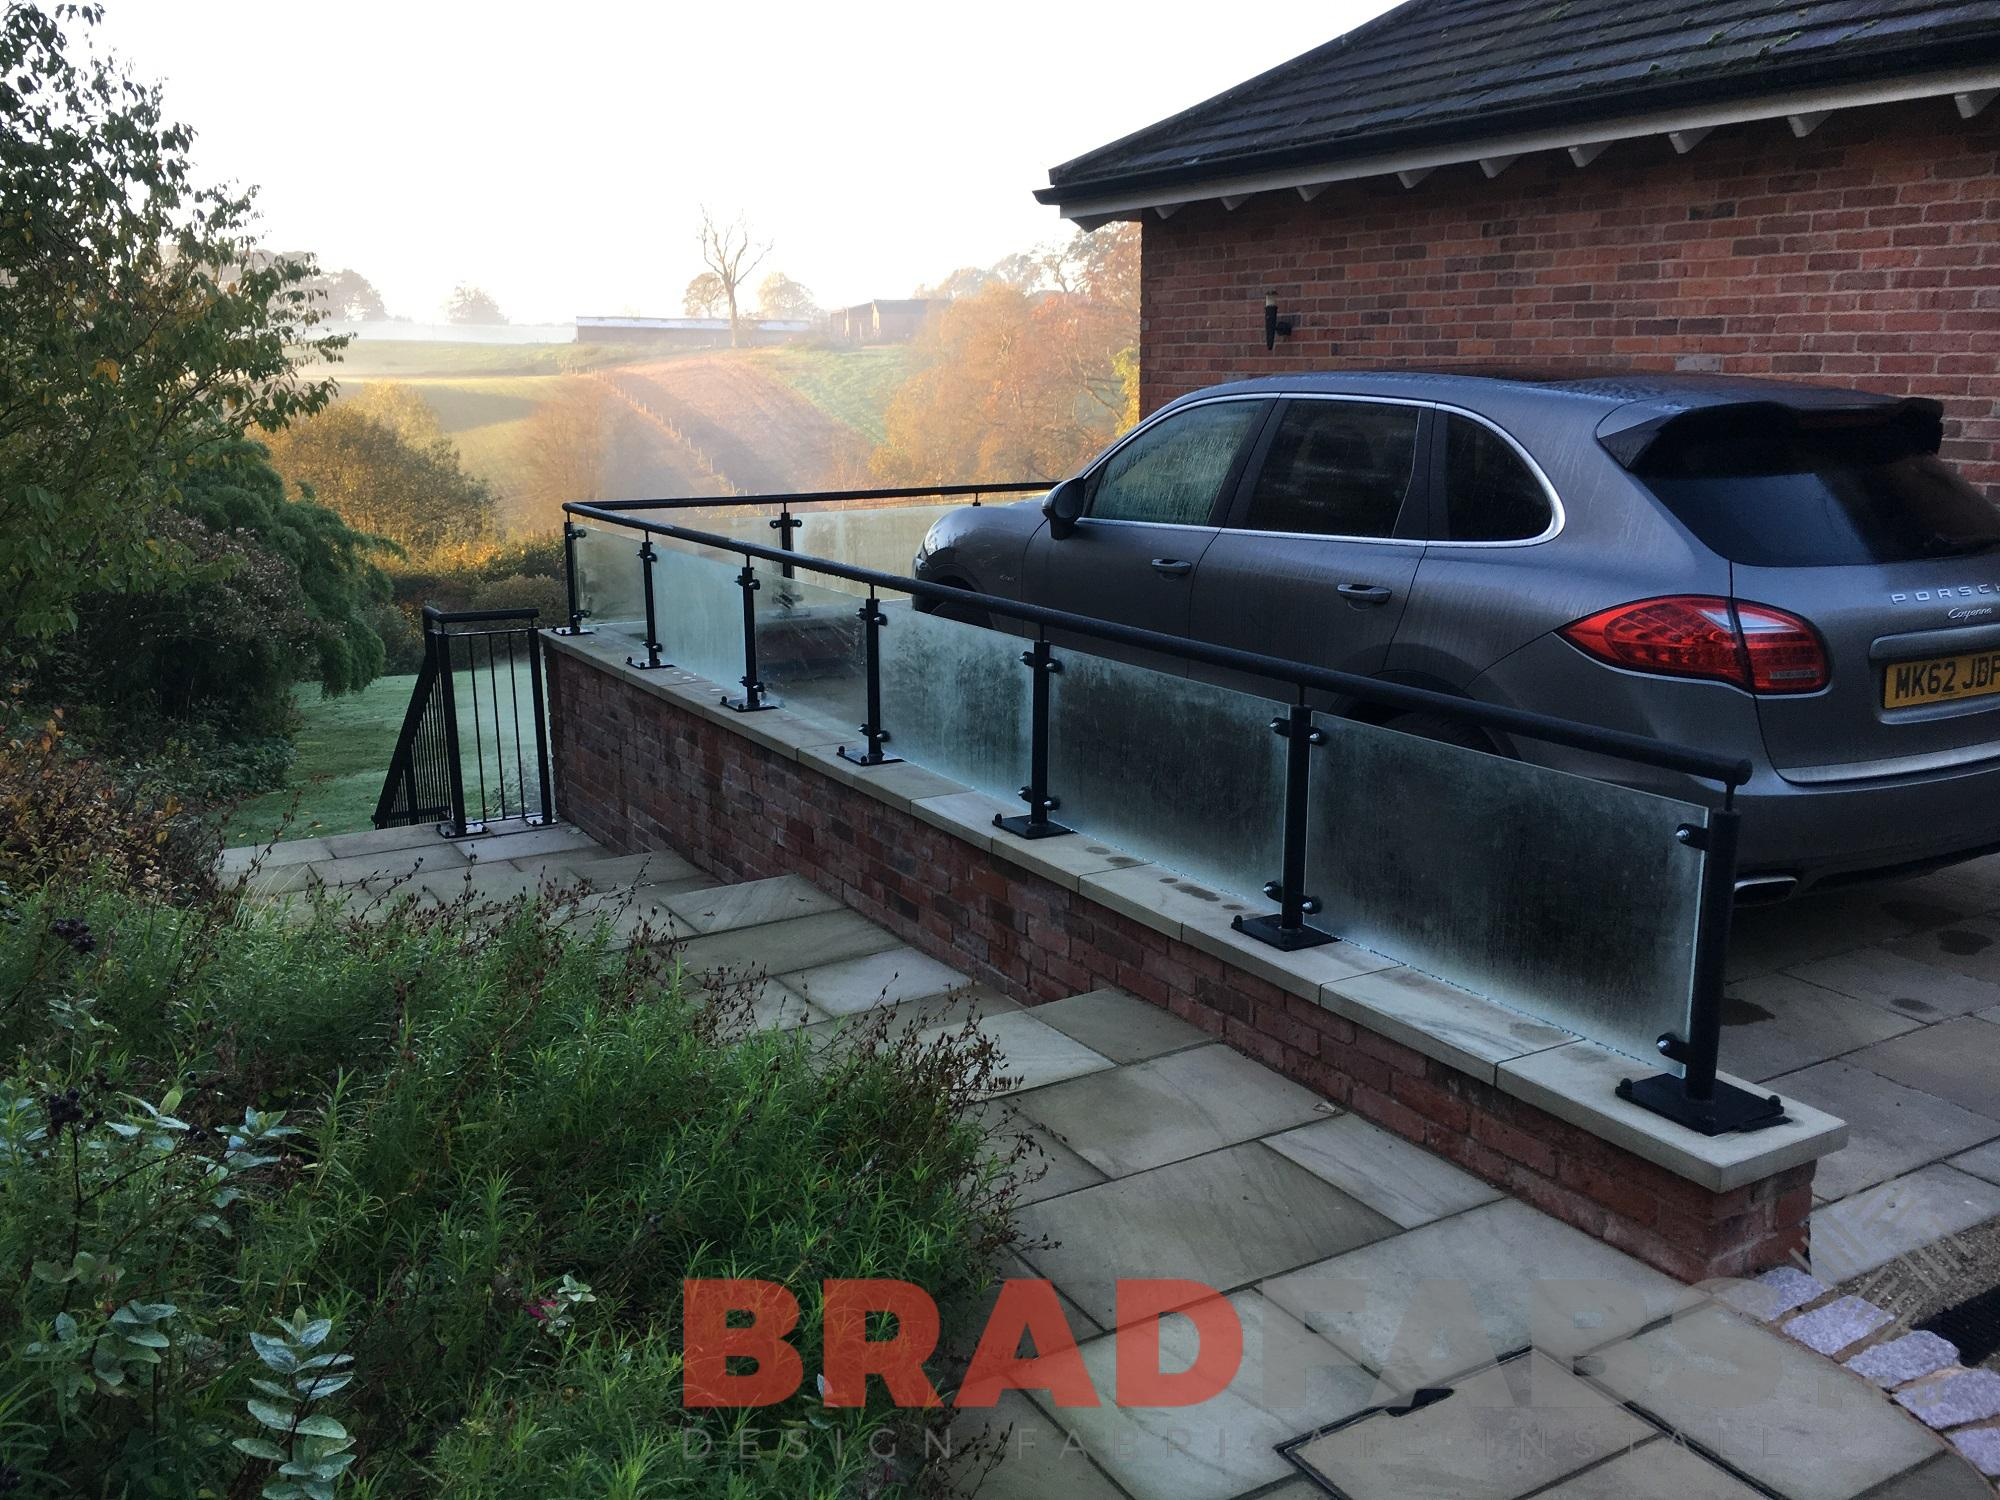 The top of our customers garden shows the mild steel, galvanised and powder coated black top rail with glass infill panels leading to the vertical bar balustrade down the stone steps leading to the garden by Bradfabs